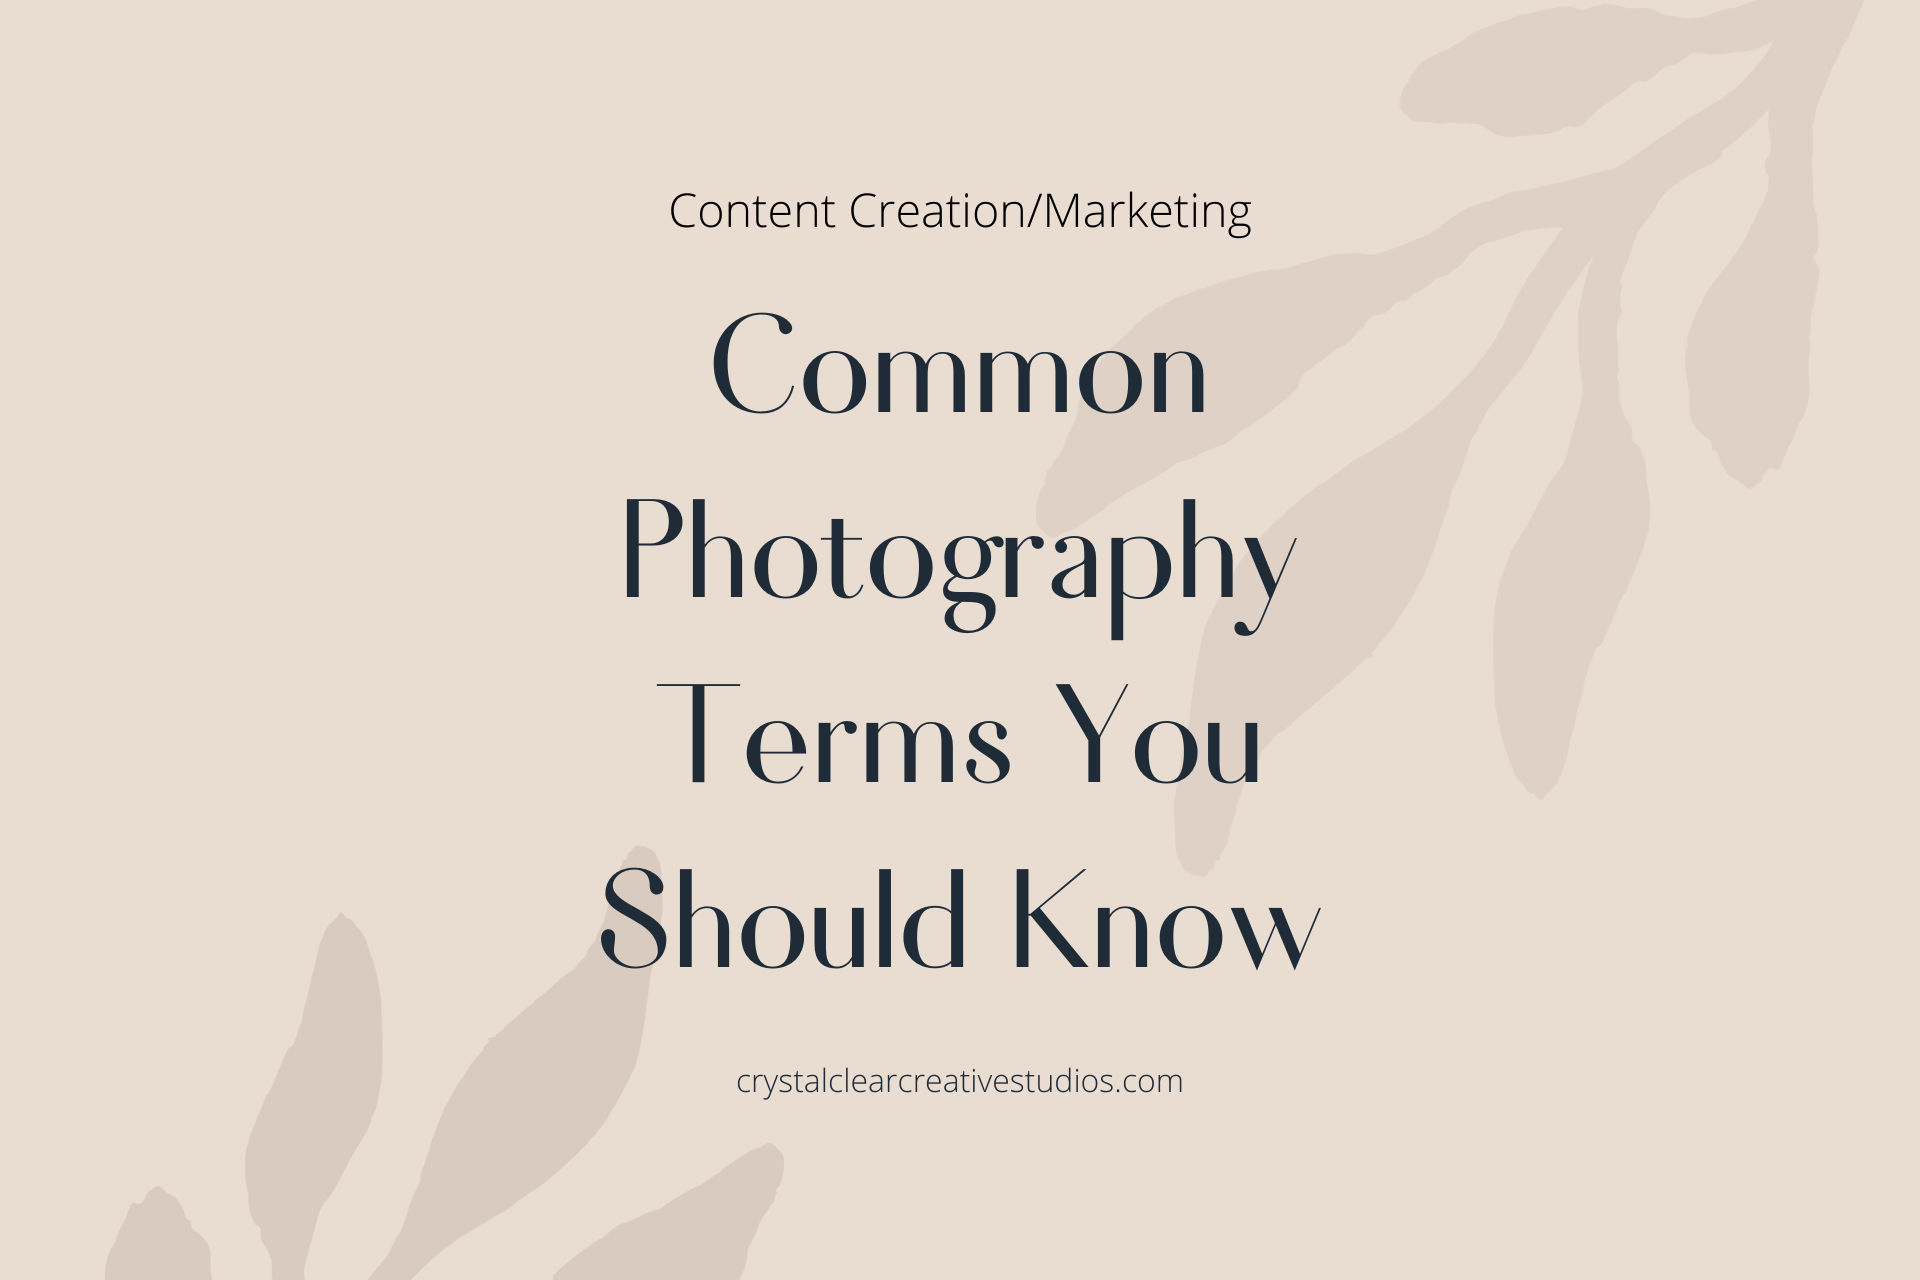 Common Photography Terms You Should Know